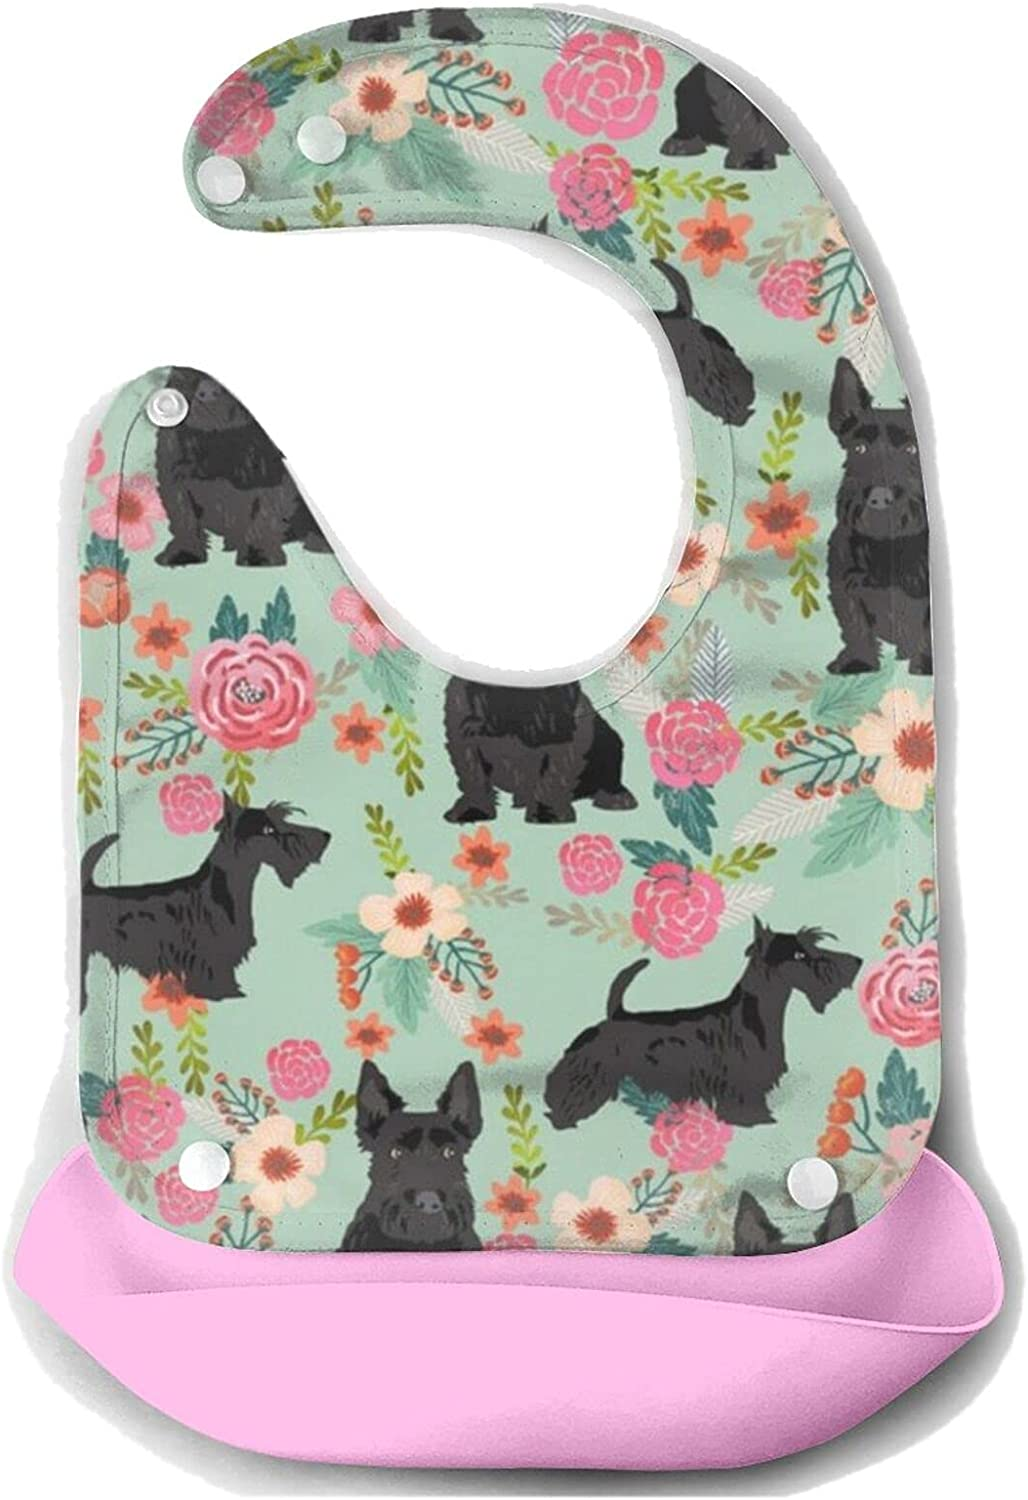 NiYoung Silicone Louisville-Jefferson County Mall Bib Drooling Bibs Lowest price challenge Bandana Ressistant Water Baby